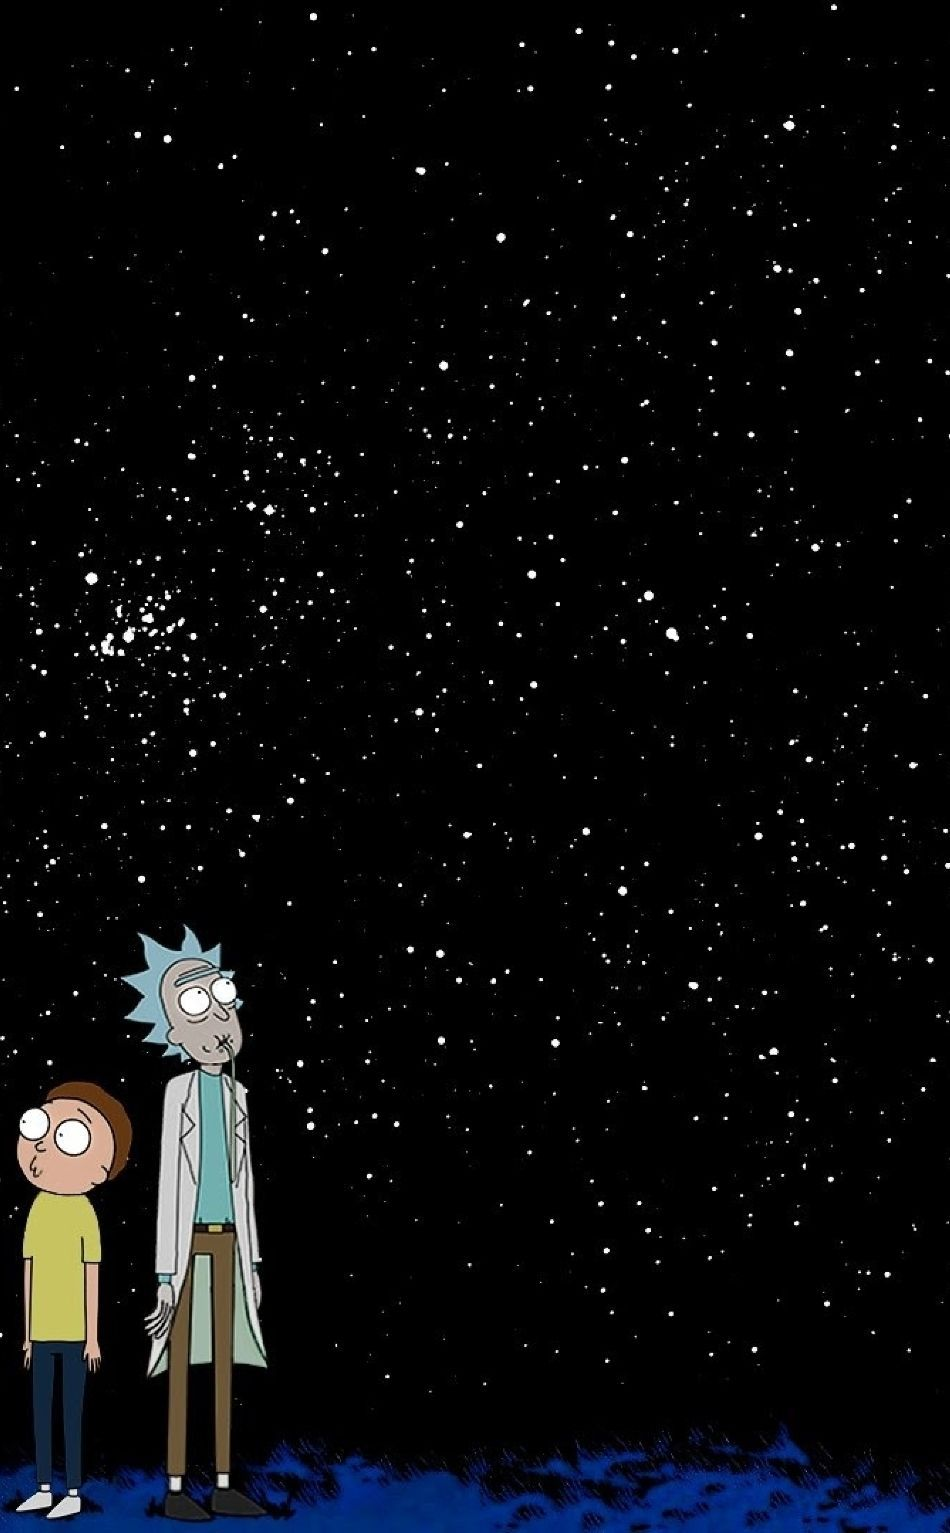 Rick And Morty Iphone Wallpapers Wallpaper Cave Within Rick And Morty Wallpaper Trend Cartoon Wallpaper Cartoon Wallpaper Hd Beast Wallpaper